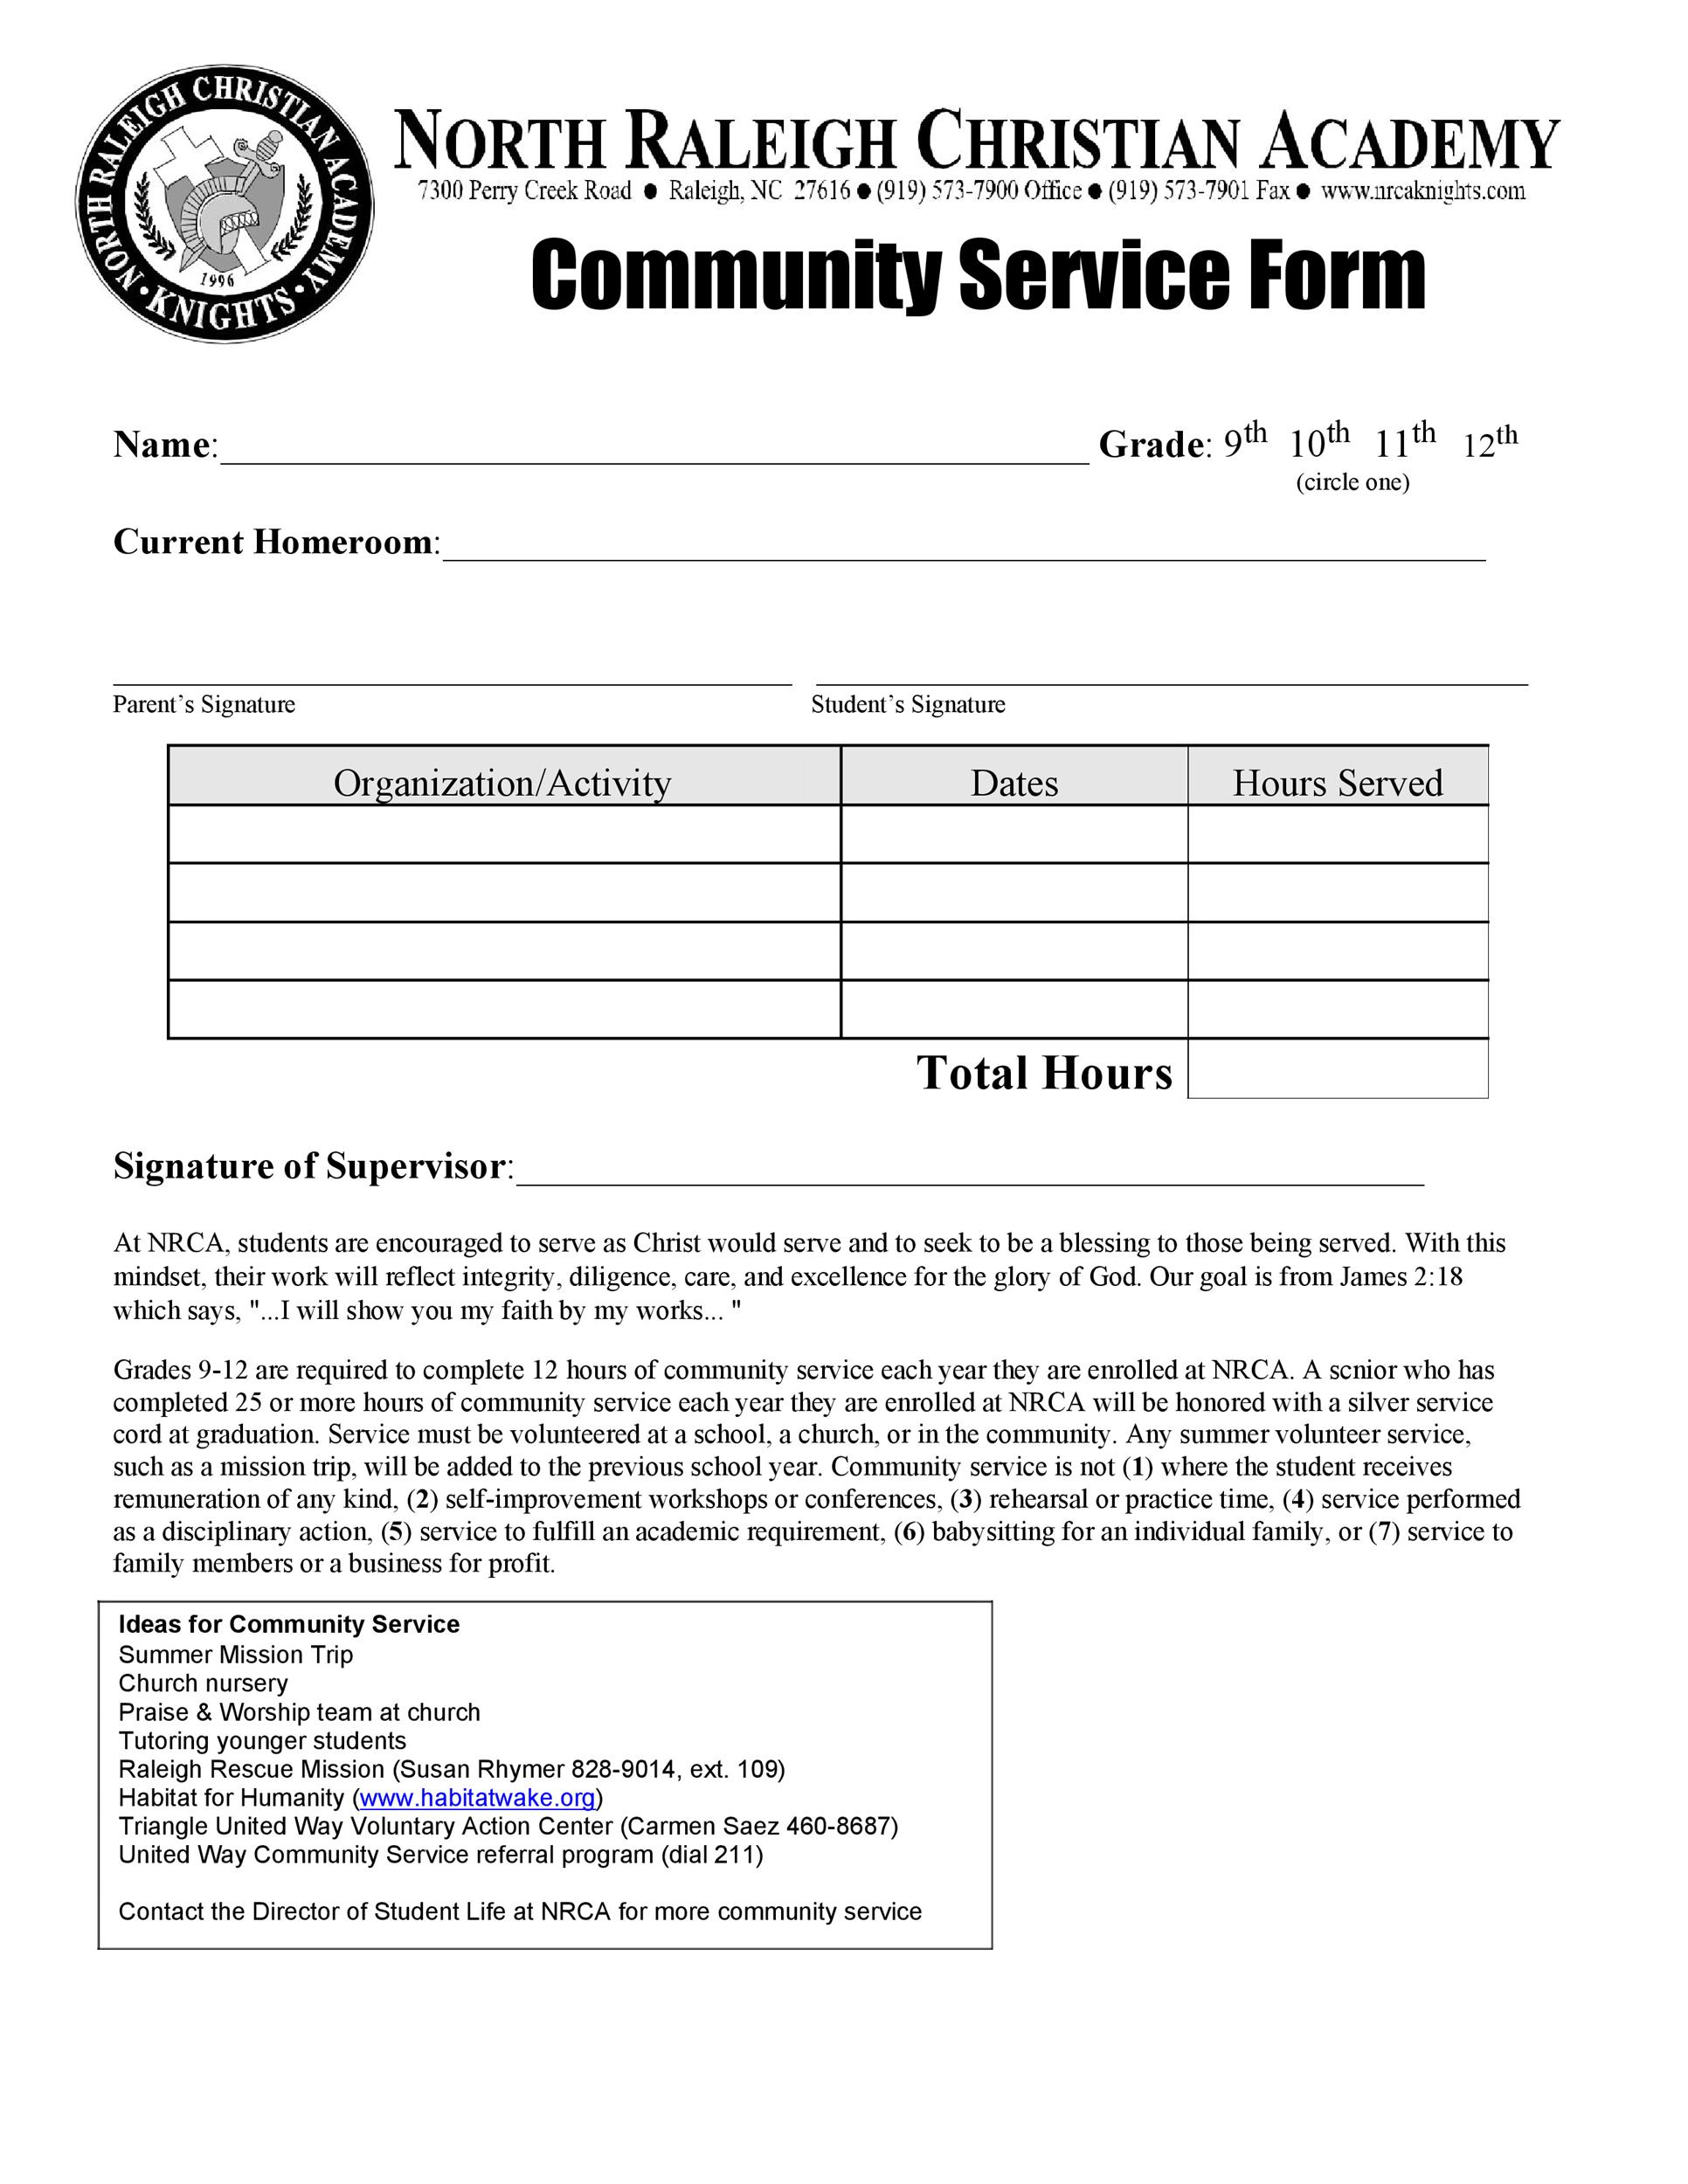 Community Service Letter - 40+ Templates [Completion, Verification]